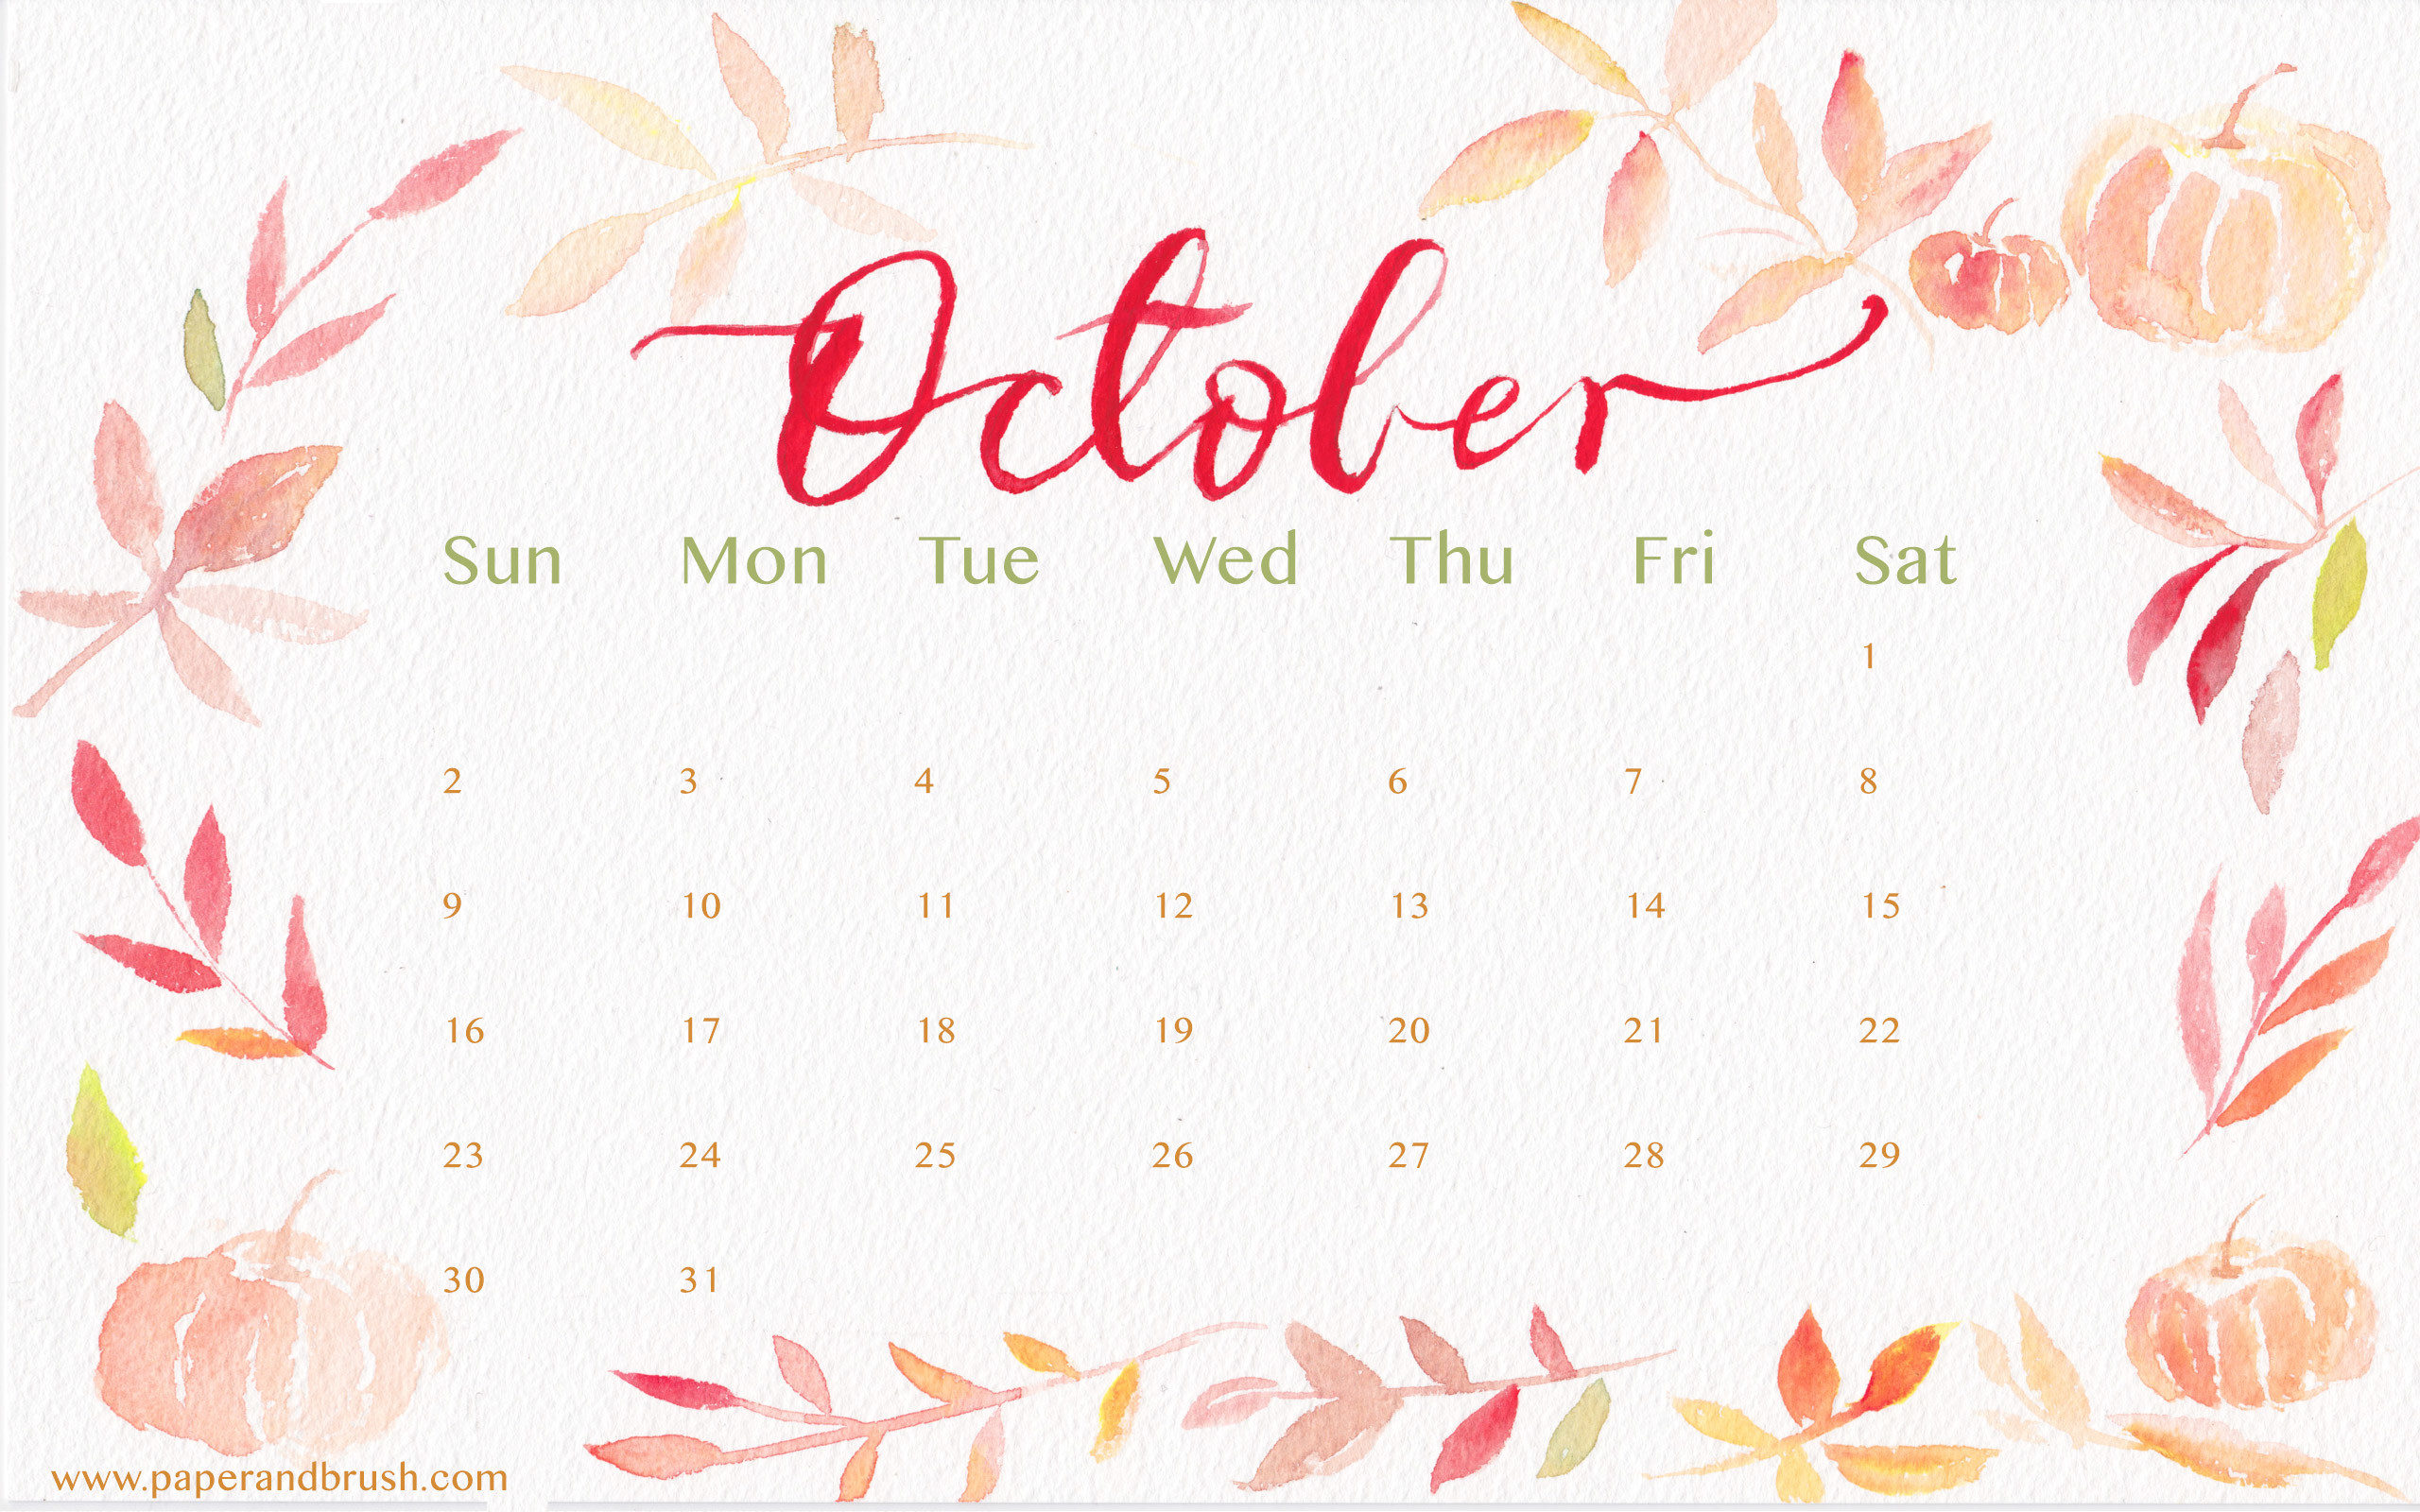 Calendar Computer Wallpaper : Wallpapers with calendar  images